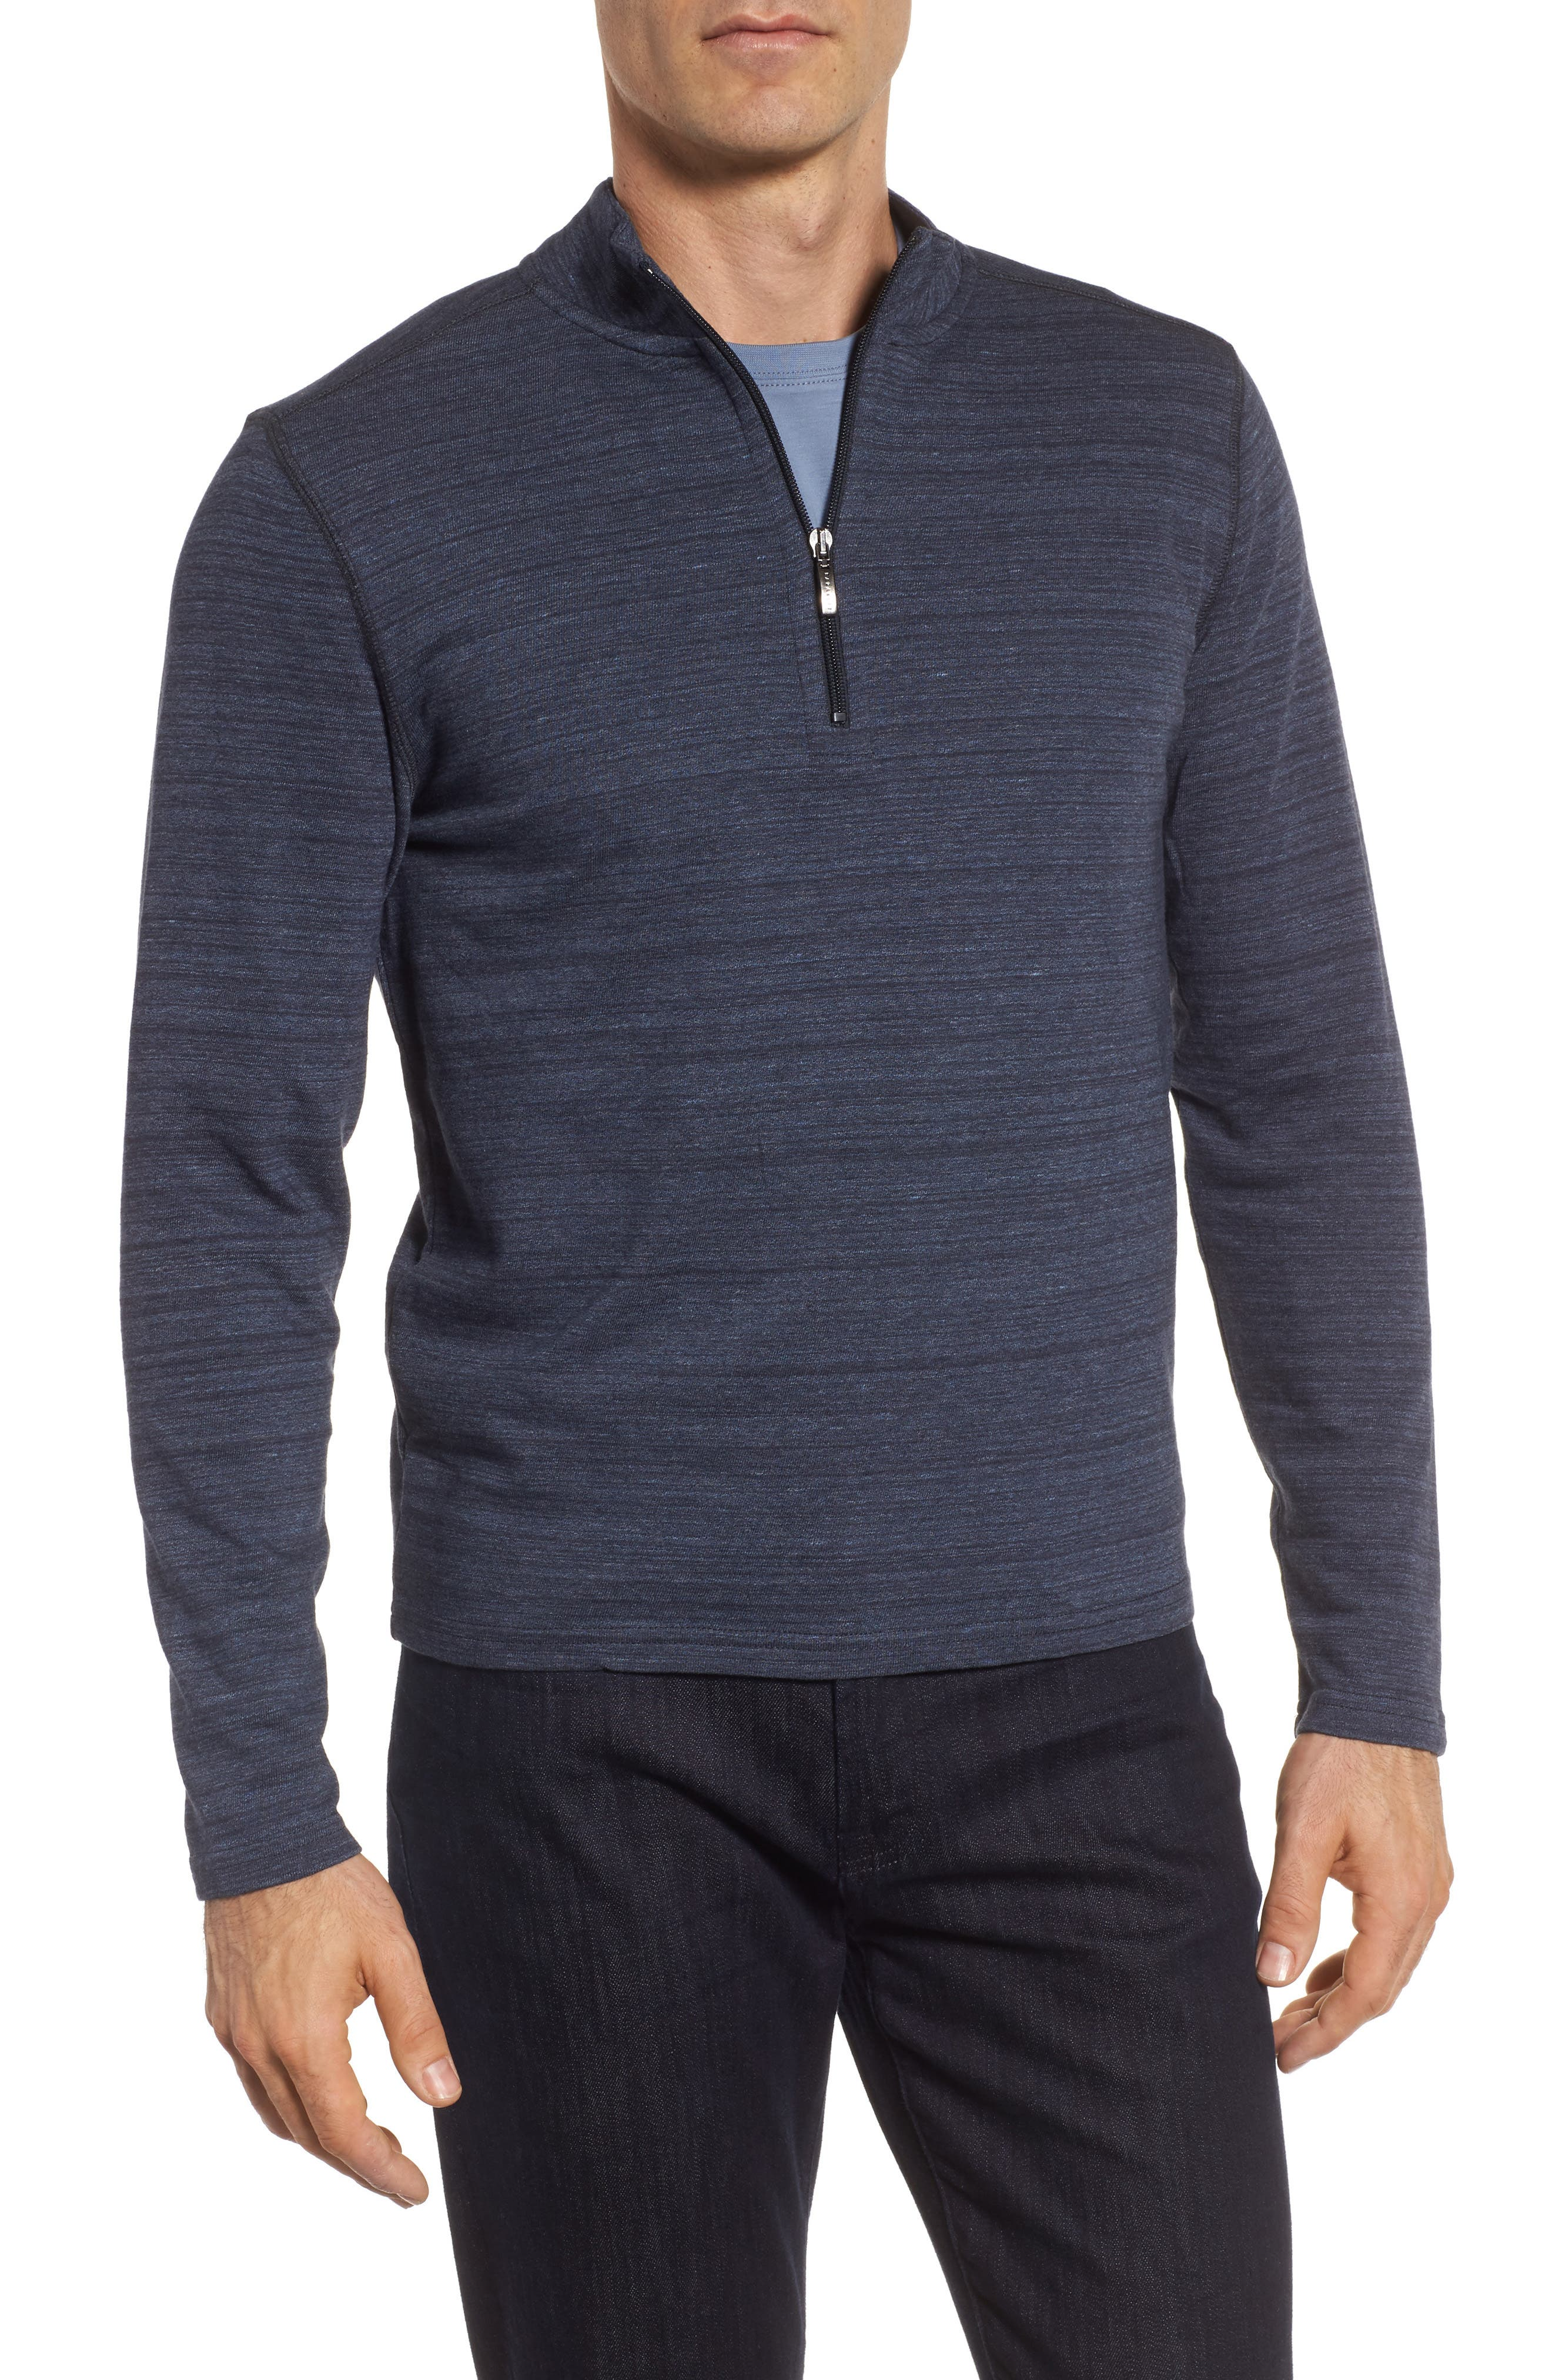 Marcel Quarter Zip Pullover,                             Main thumbnail 1, color,                             525